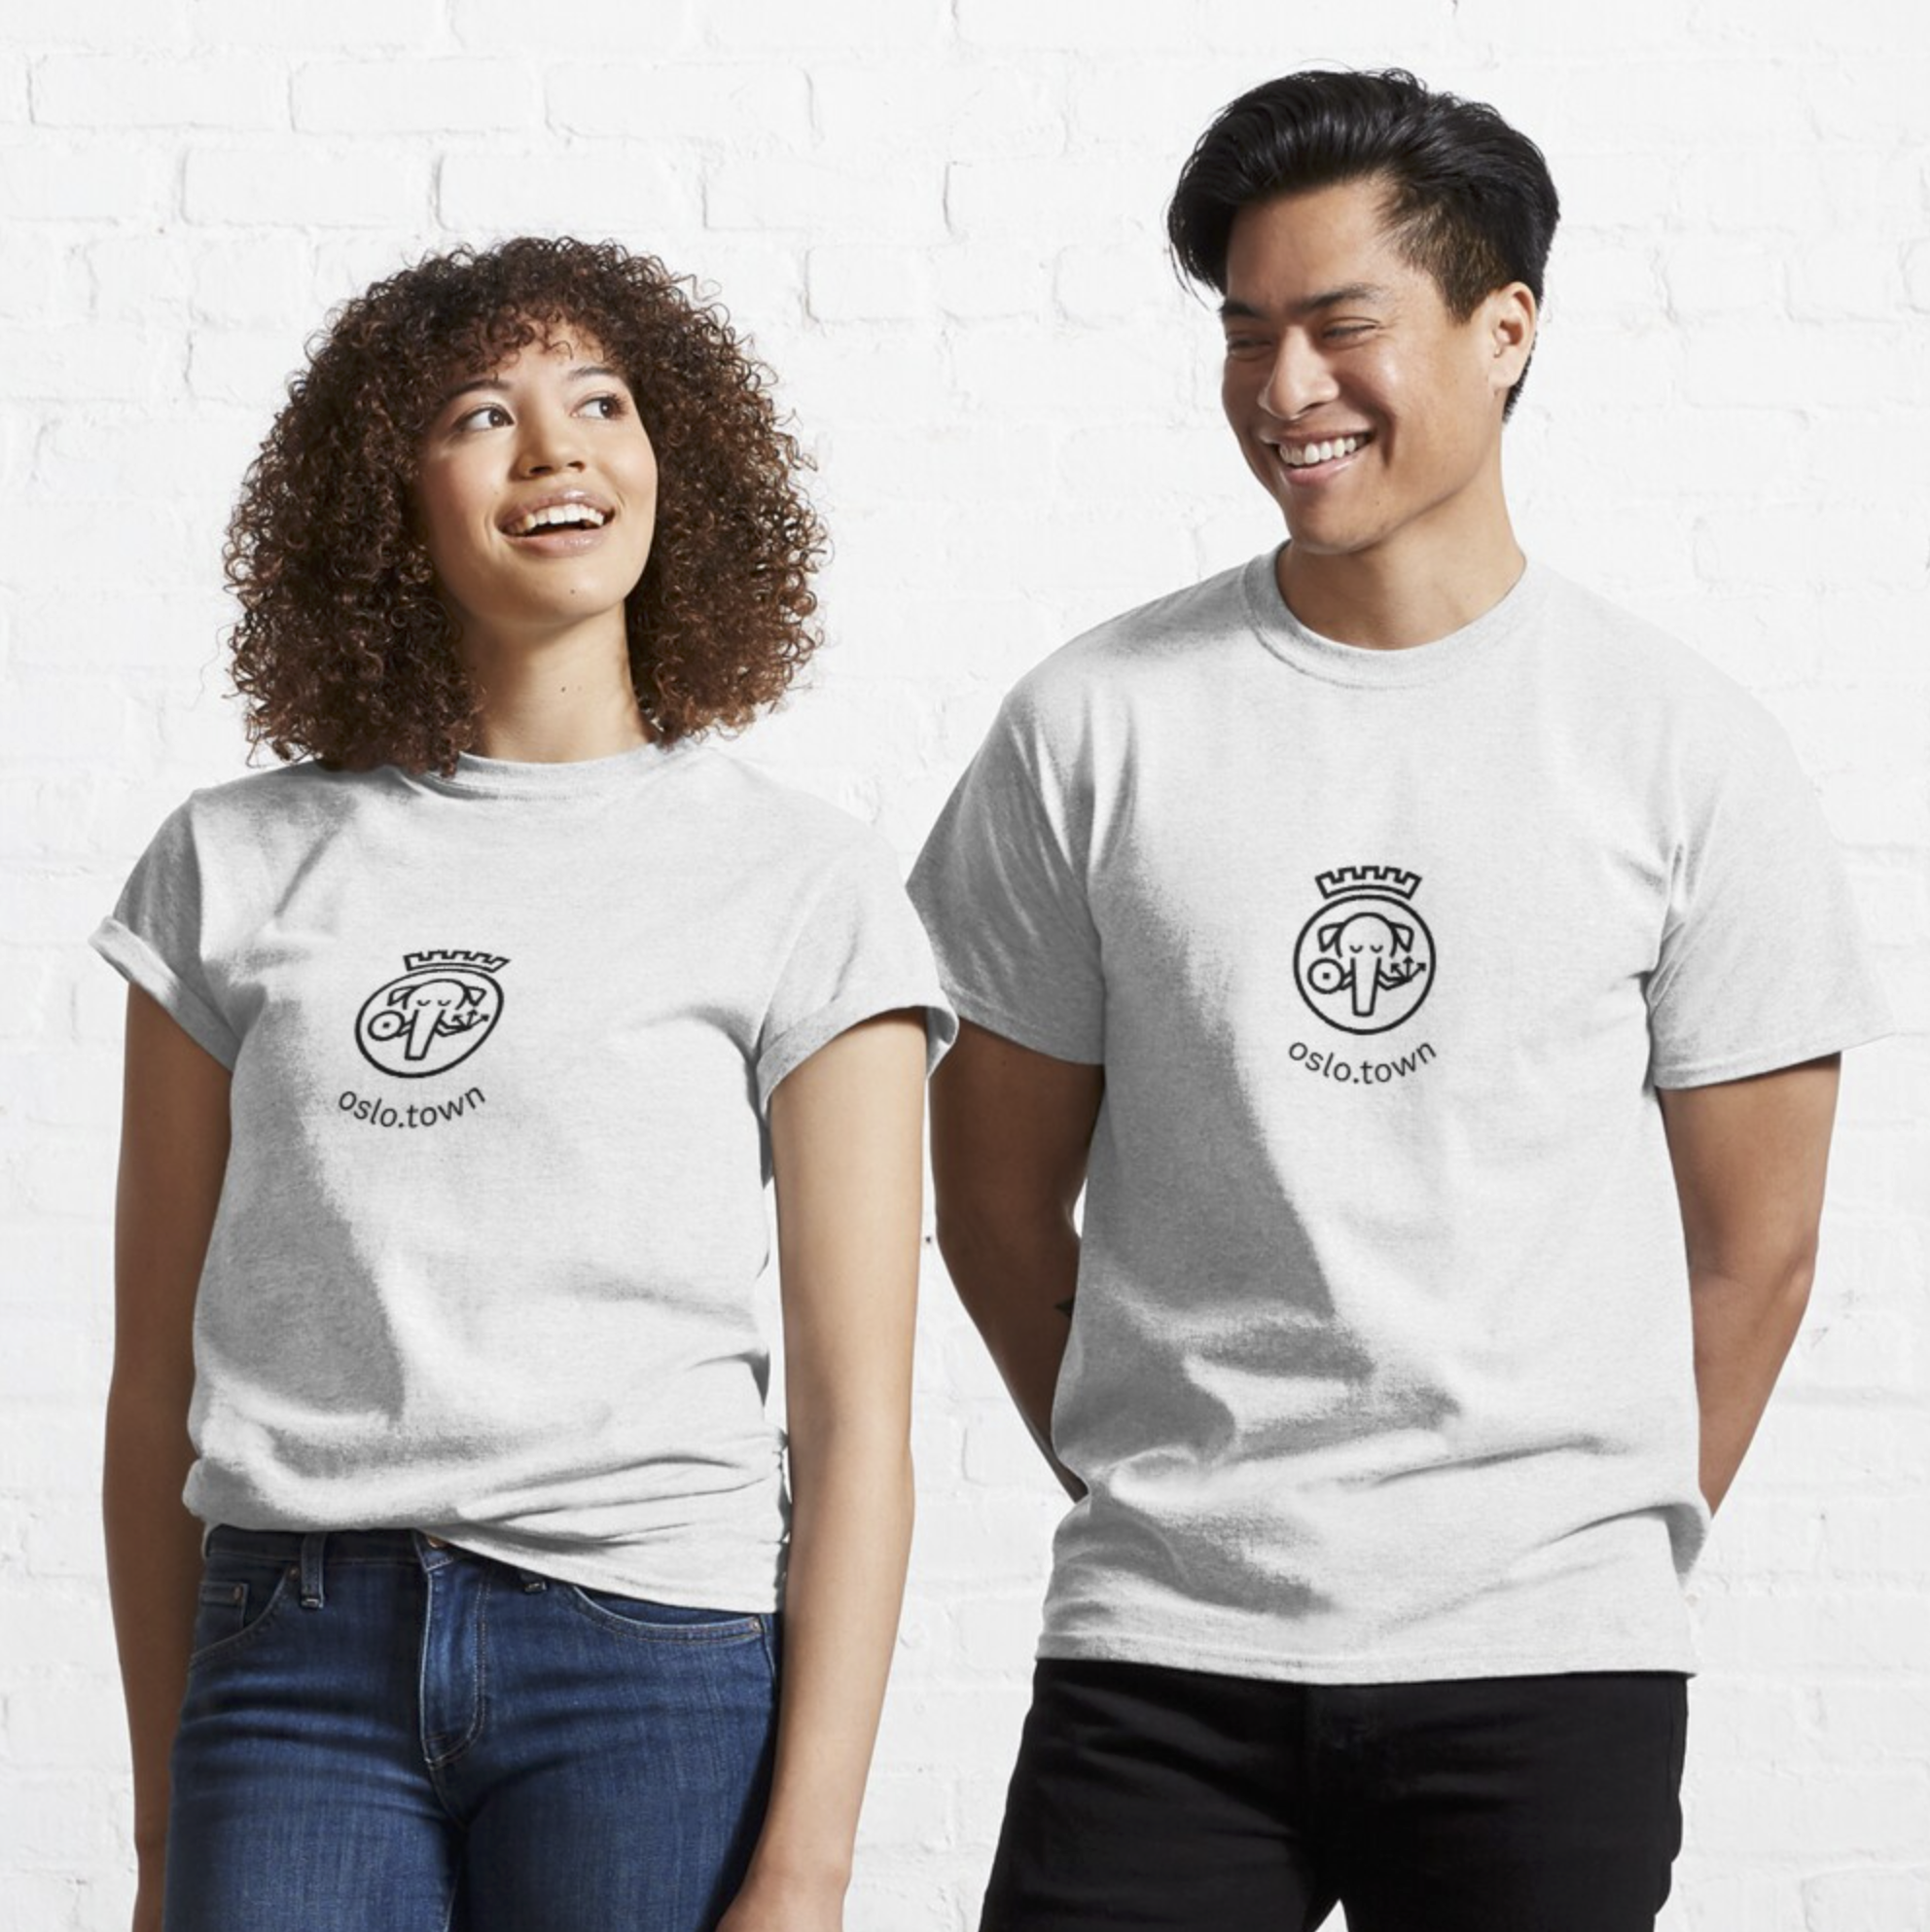 A photo of the oslo.town logo on t-shirts